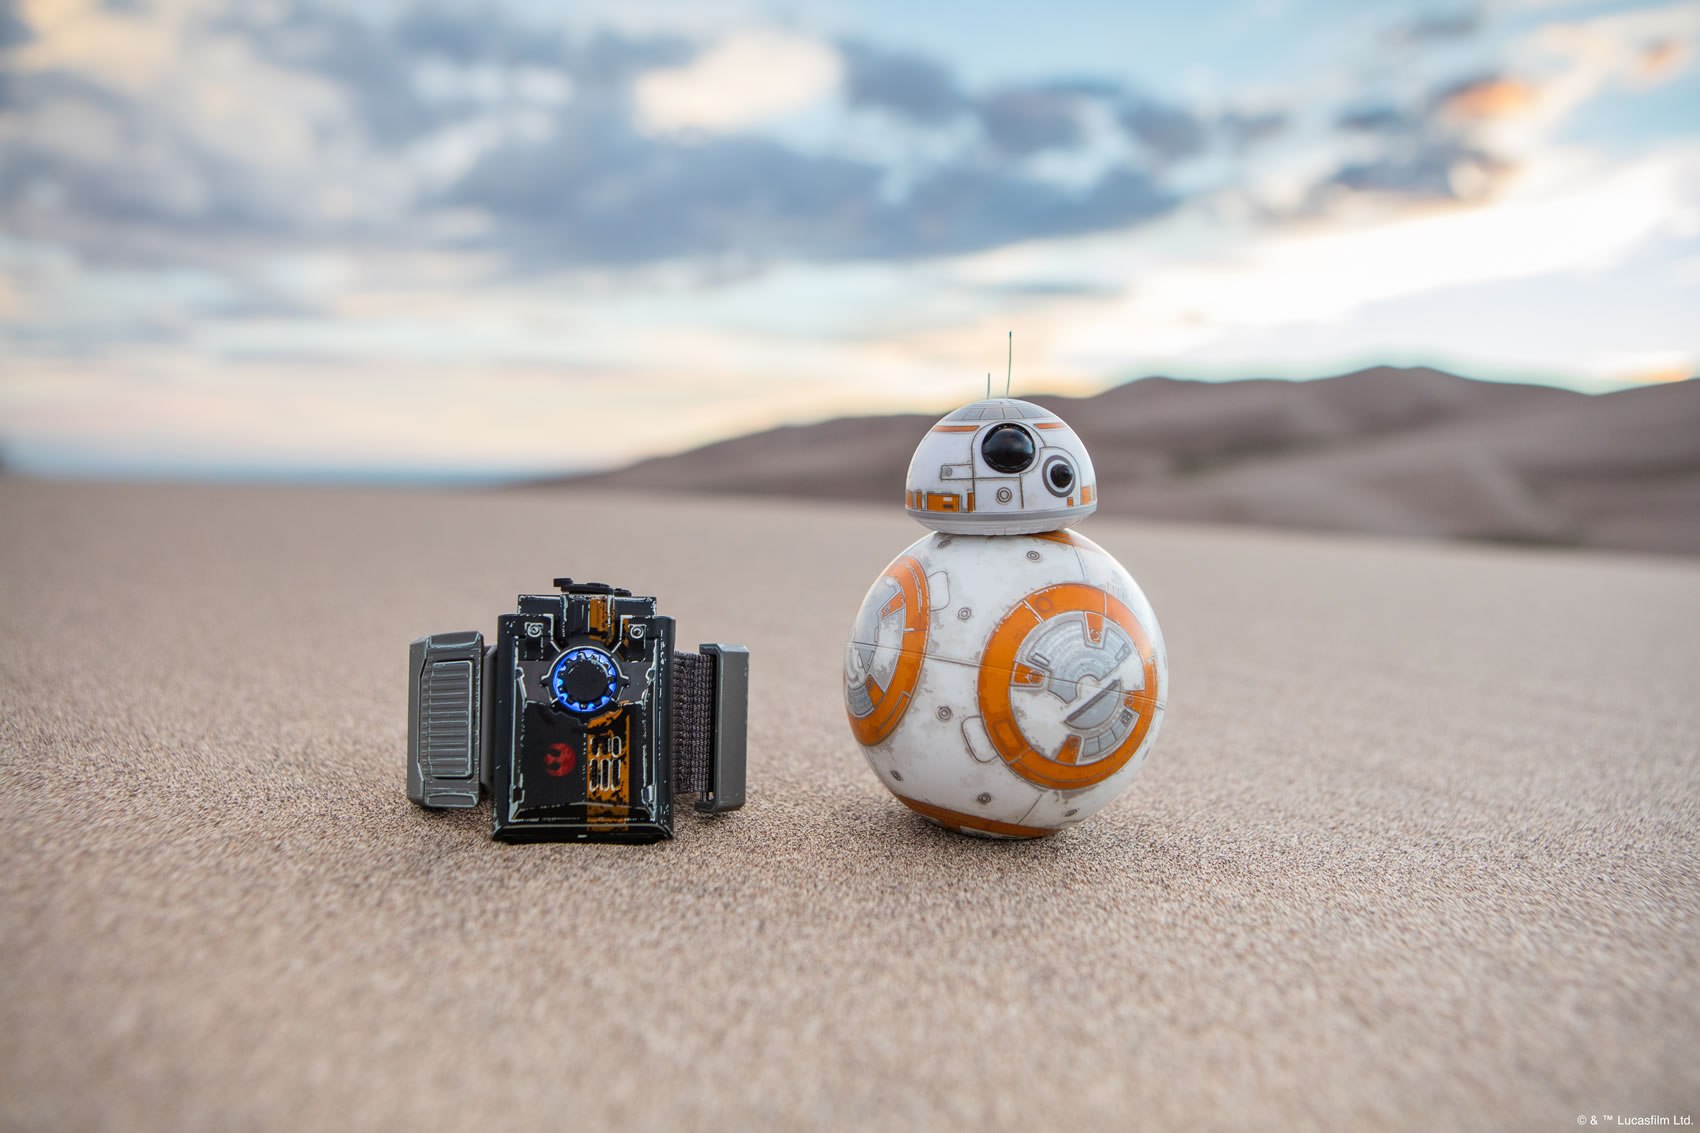 Bringing home the 'NOW' generation of Robotics -Sphero's BB-8 and Force Band - image courtesy Sphero © & ™ Lucasfilm Ltd.